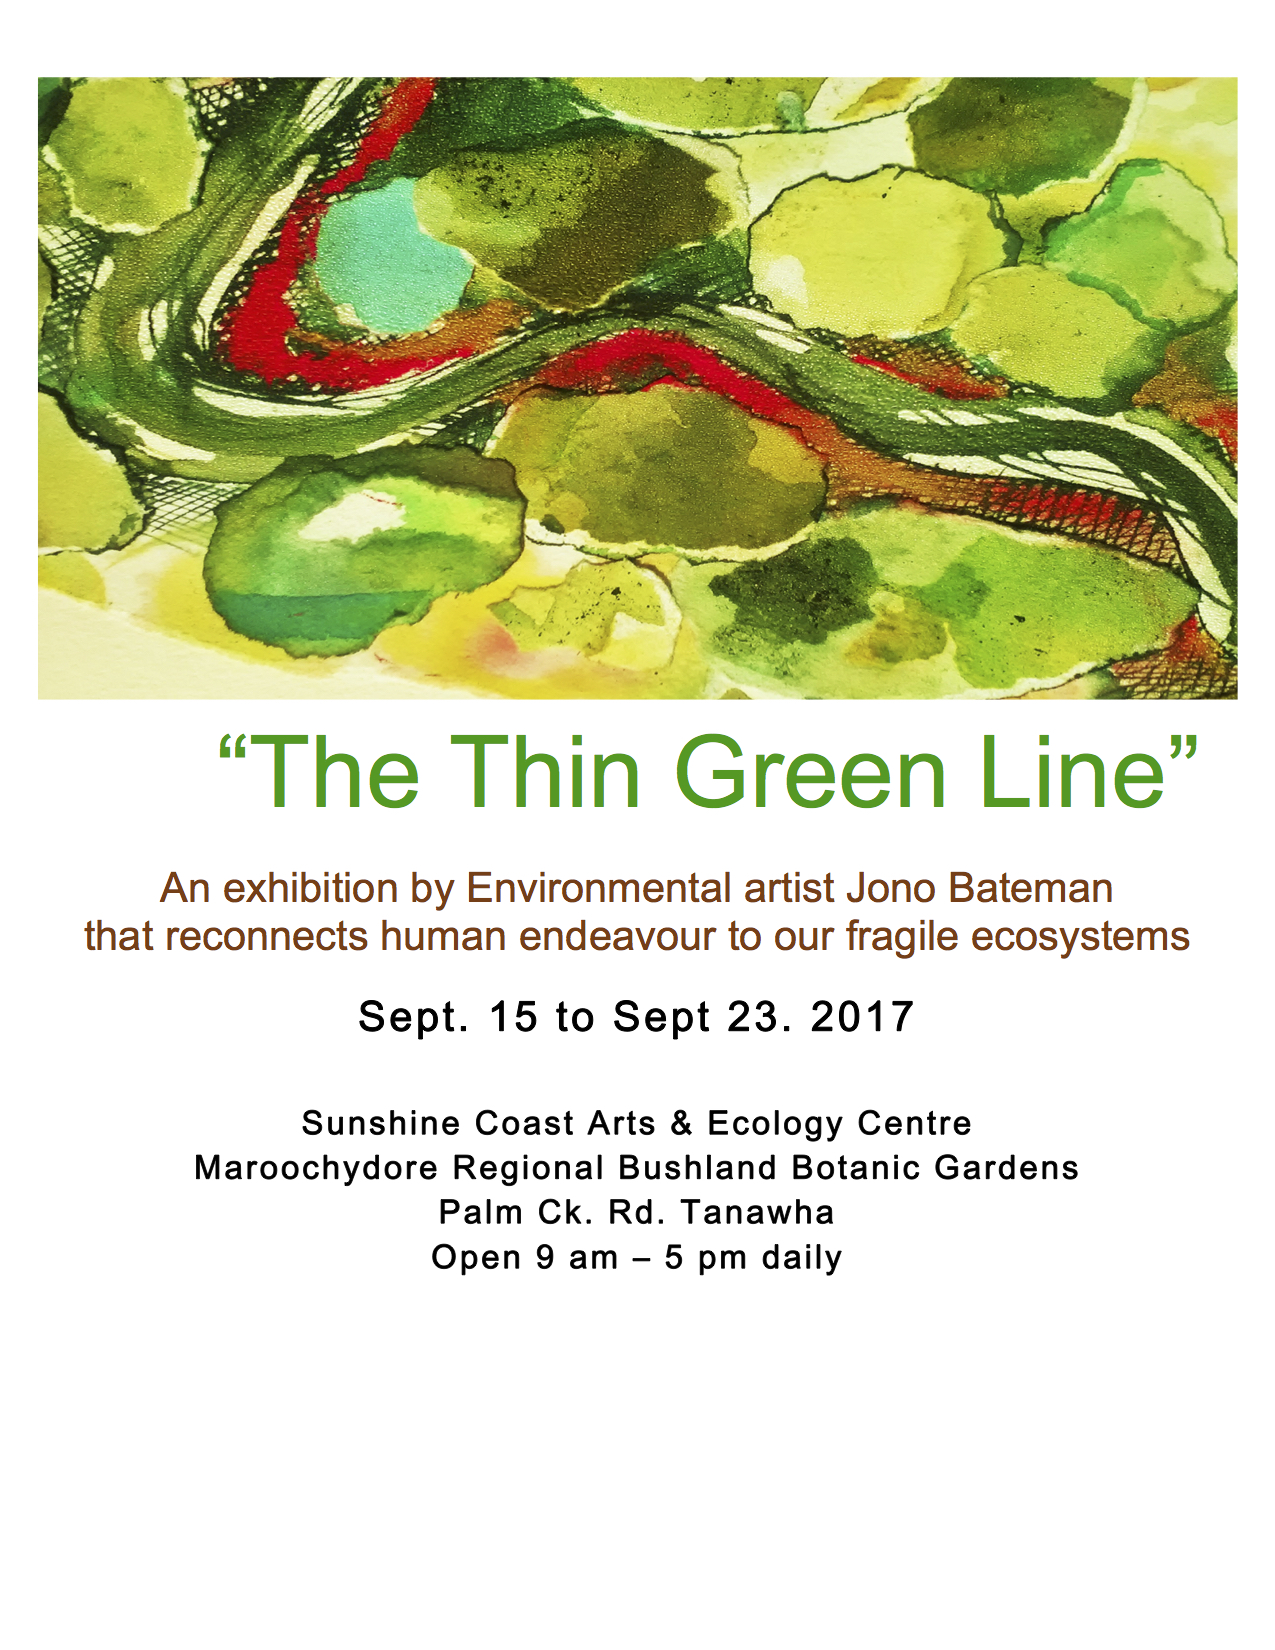 The thin green line flyer